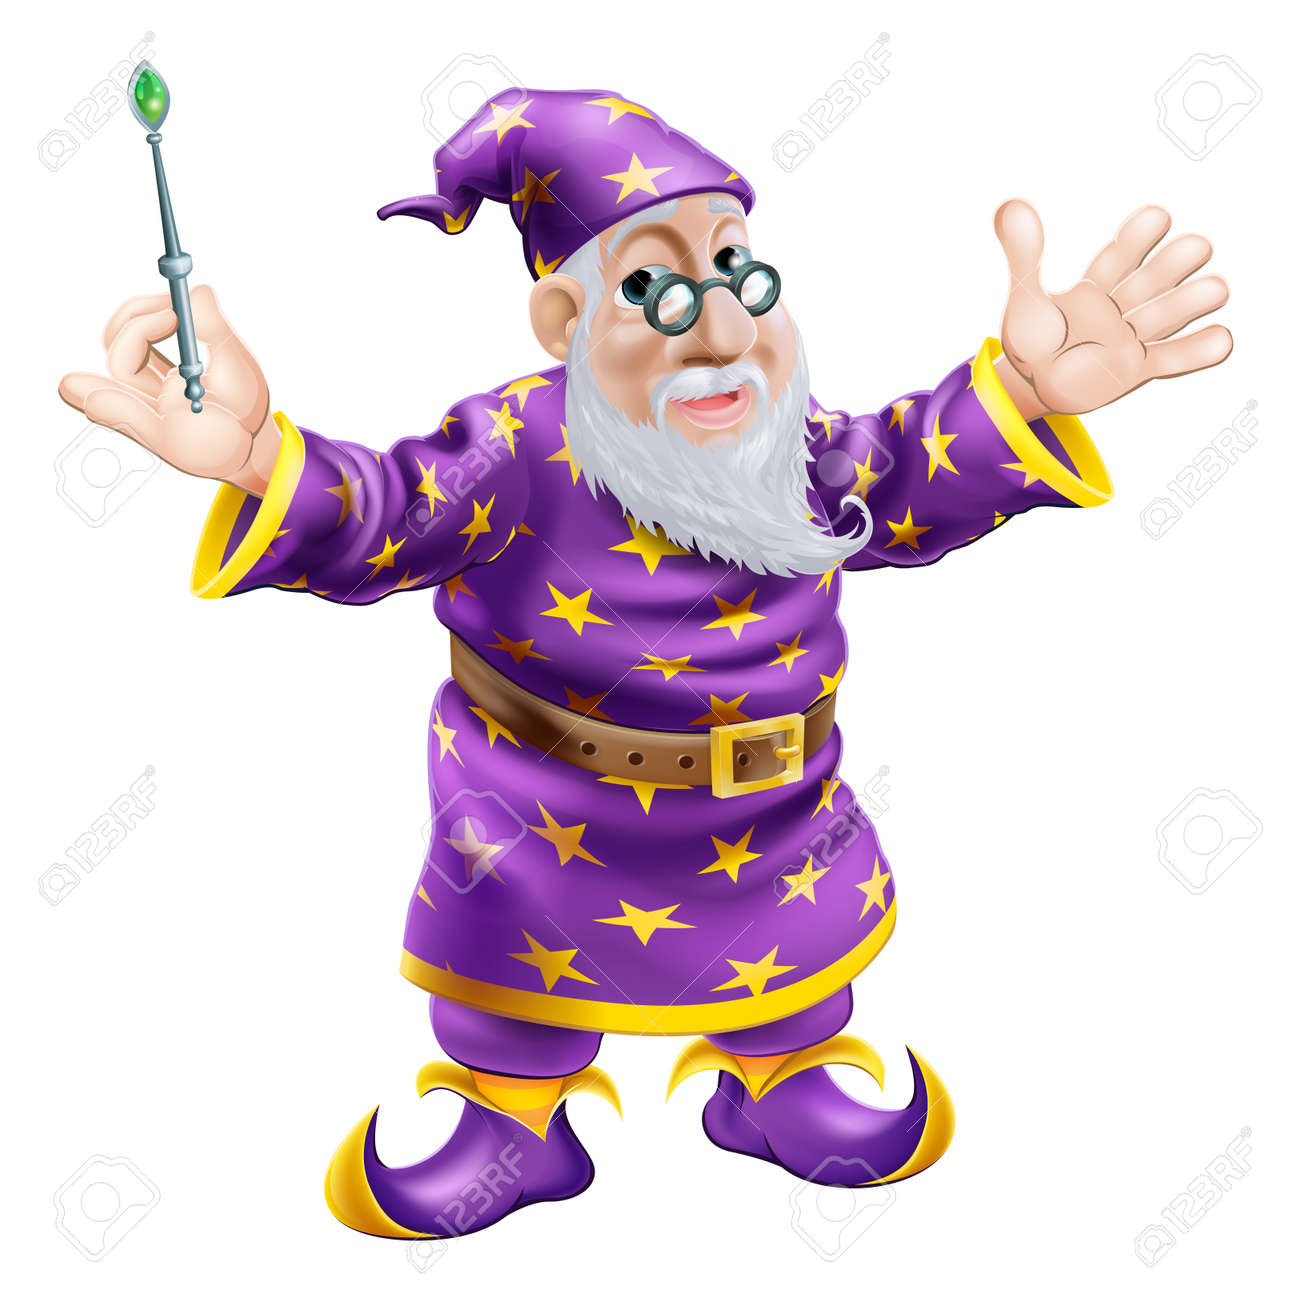 A cartoon cute friendly old wizard character holding a wand - 16922204